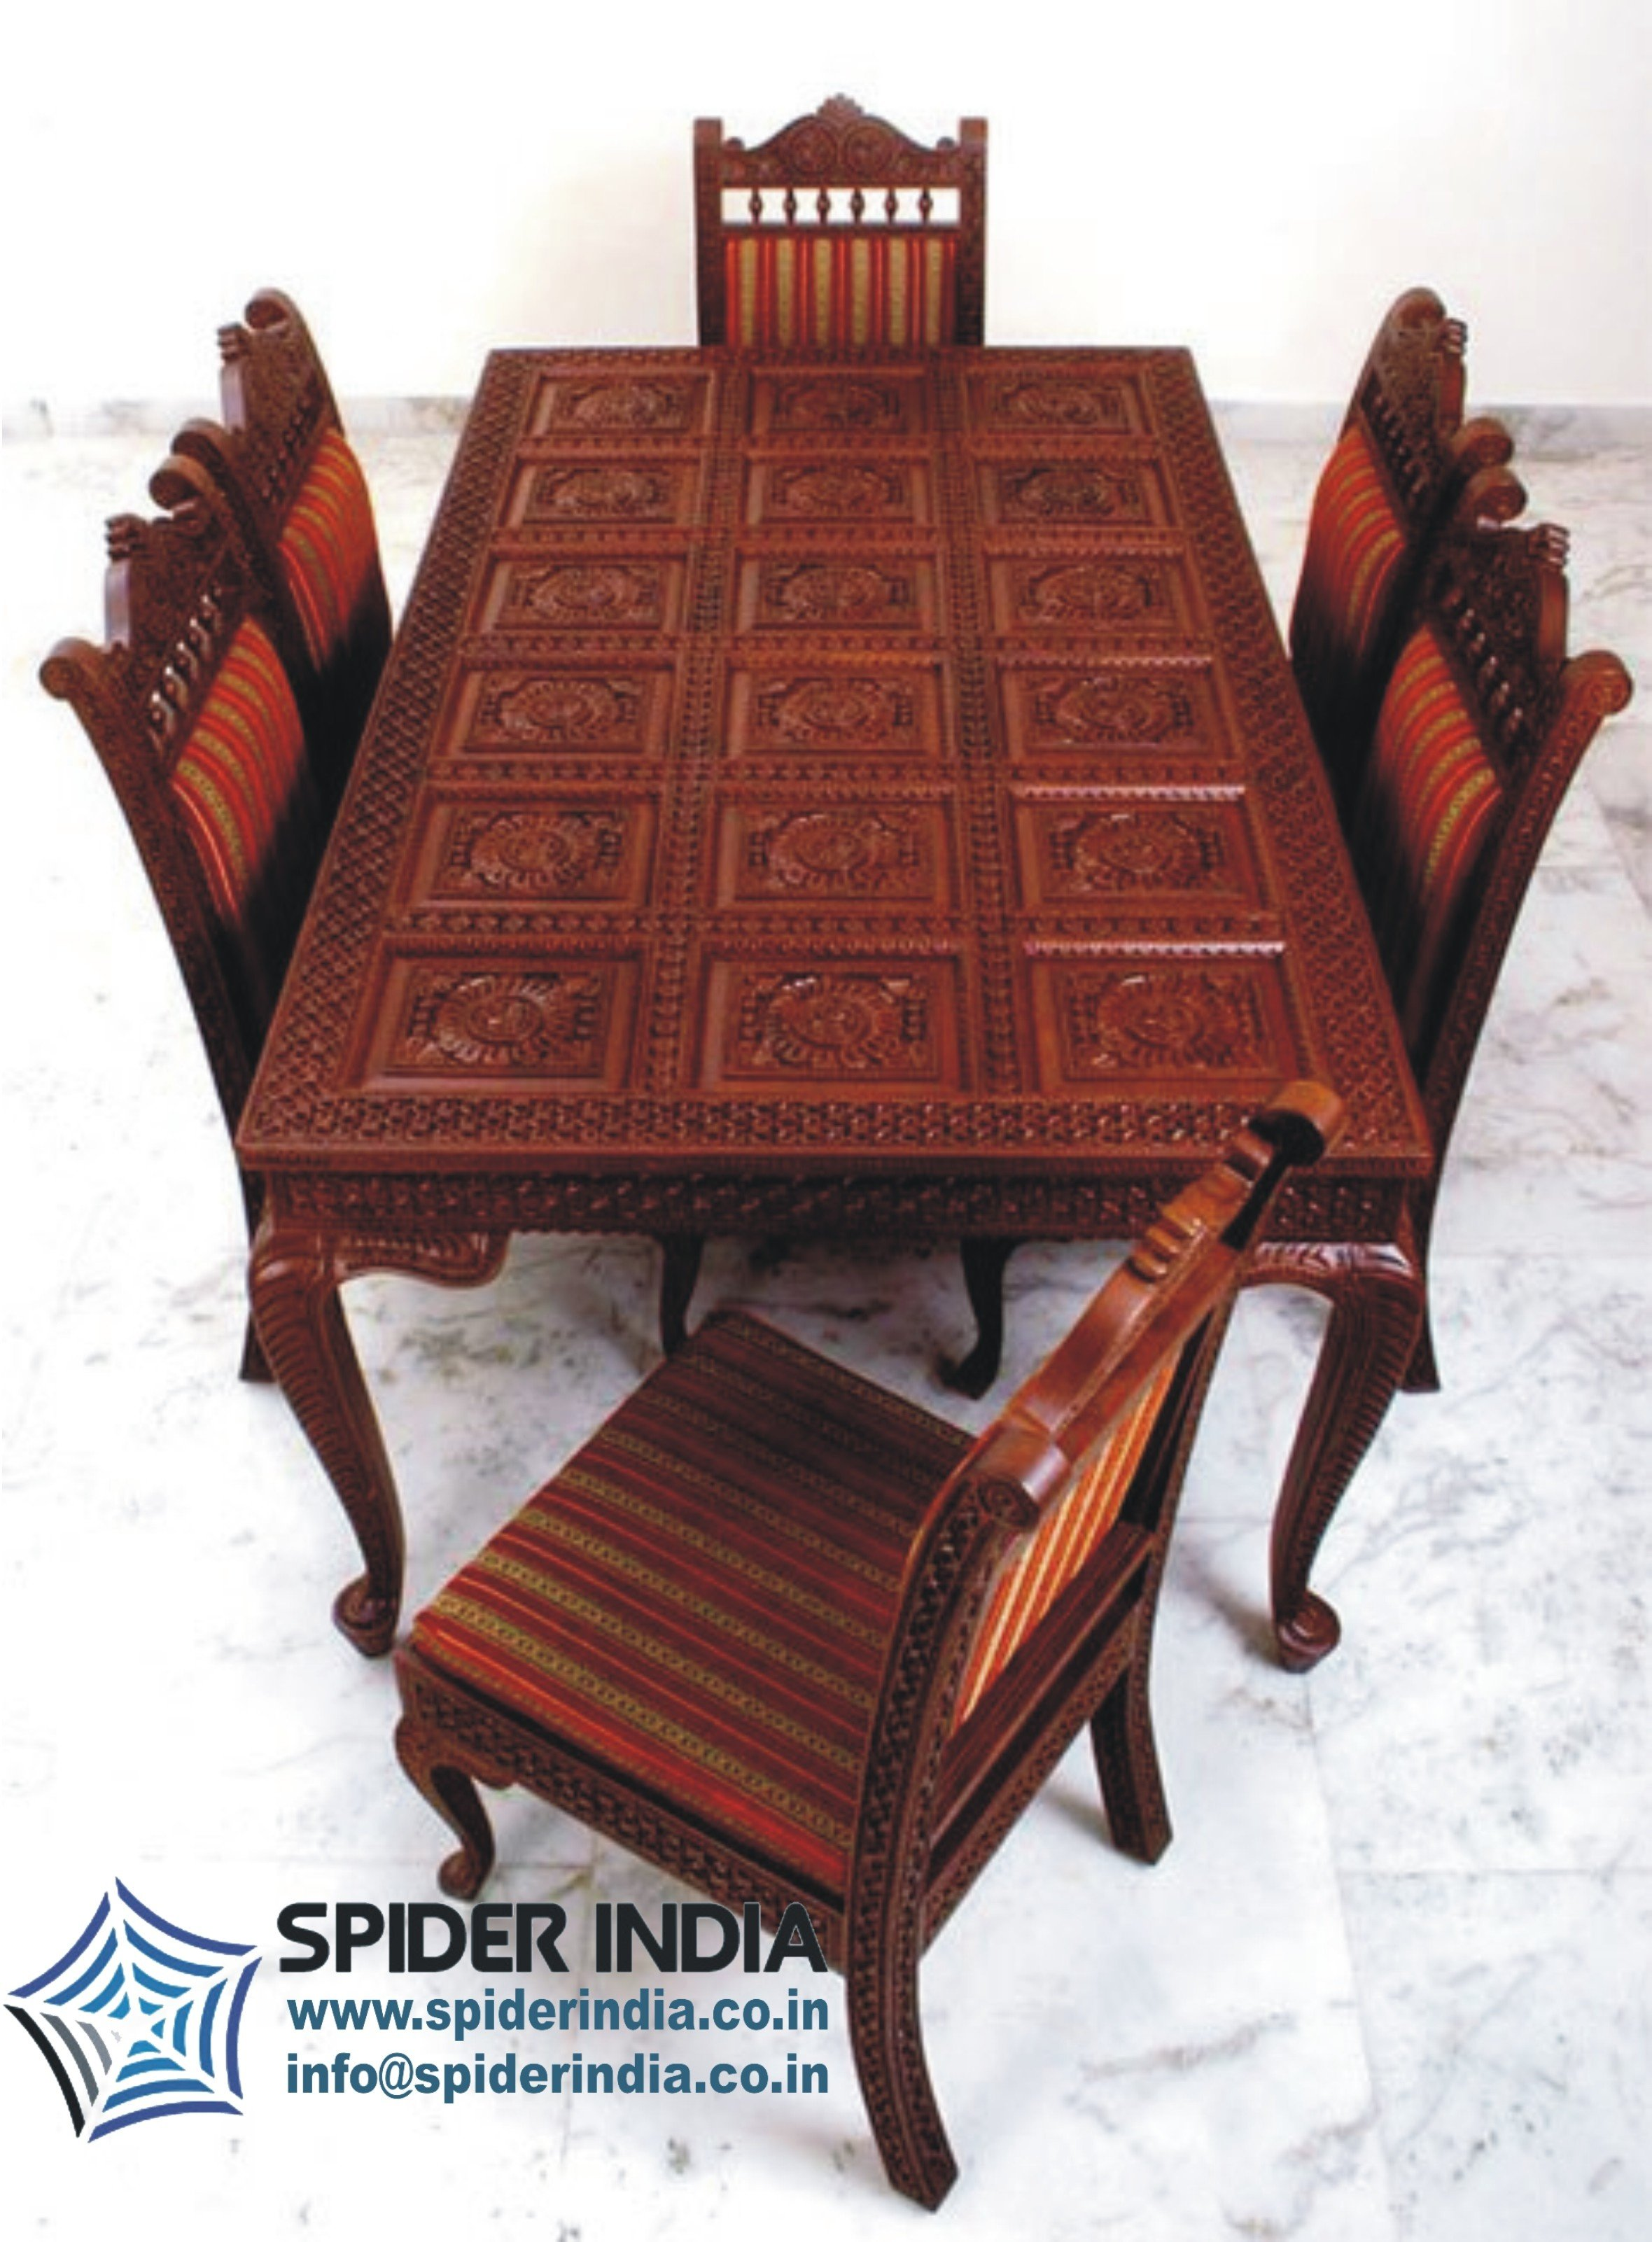 For Furniture Which Material Is Costlier Teak Or Rosewood Quora